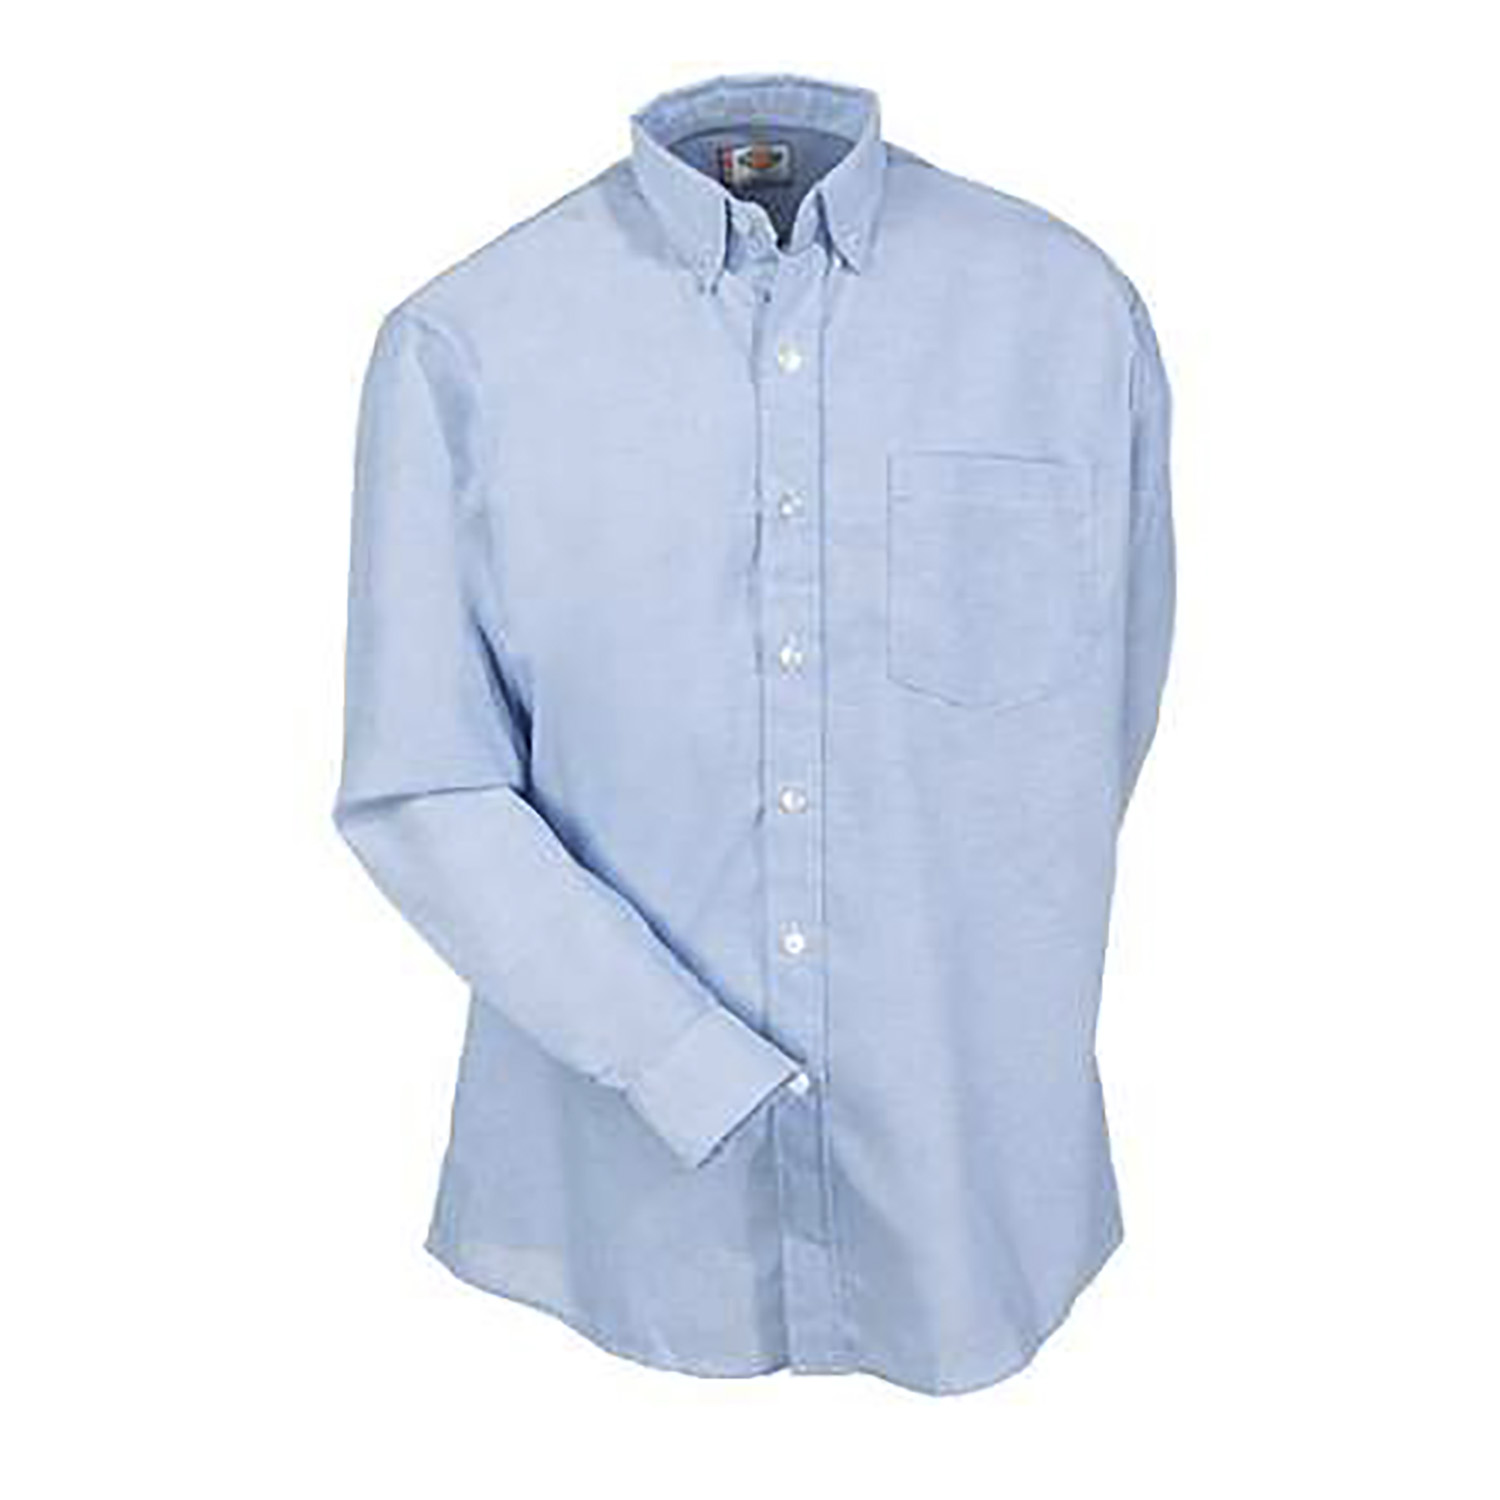 Dickies Shirt Long Sleeve Polyester Oxford